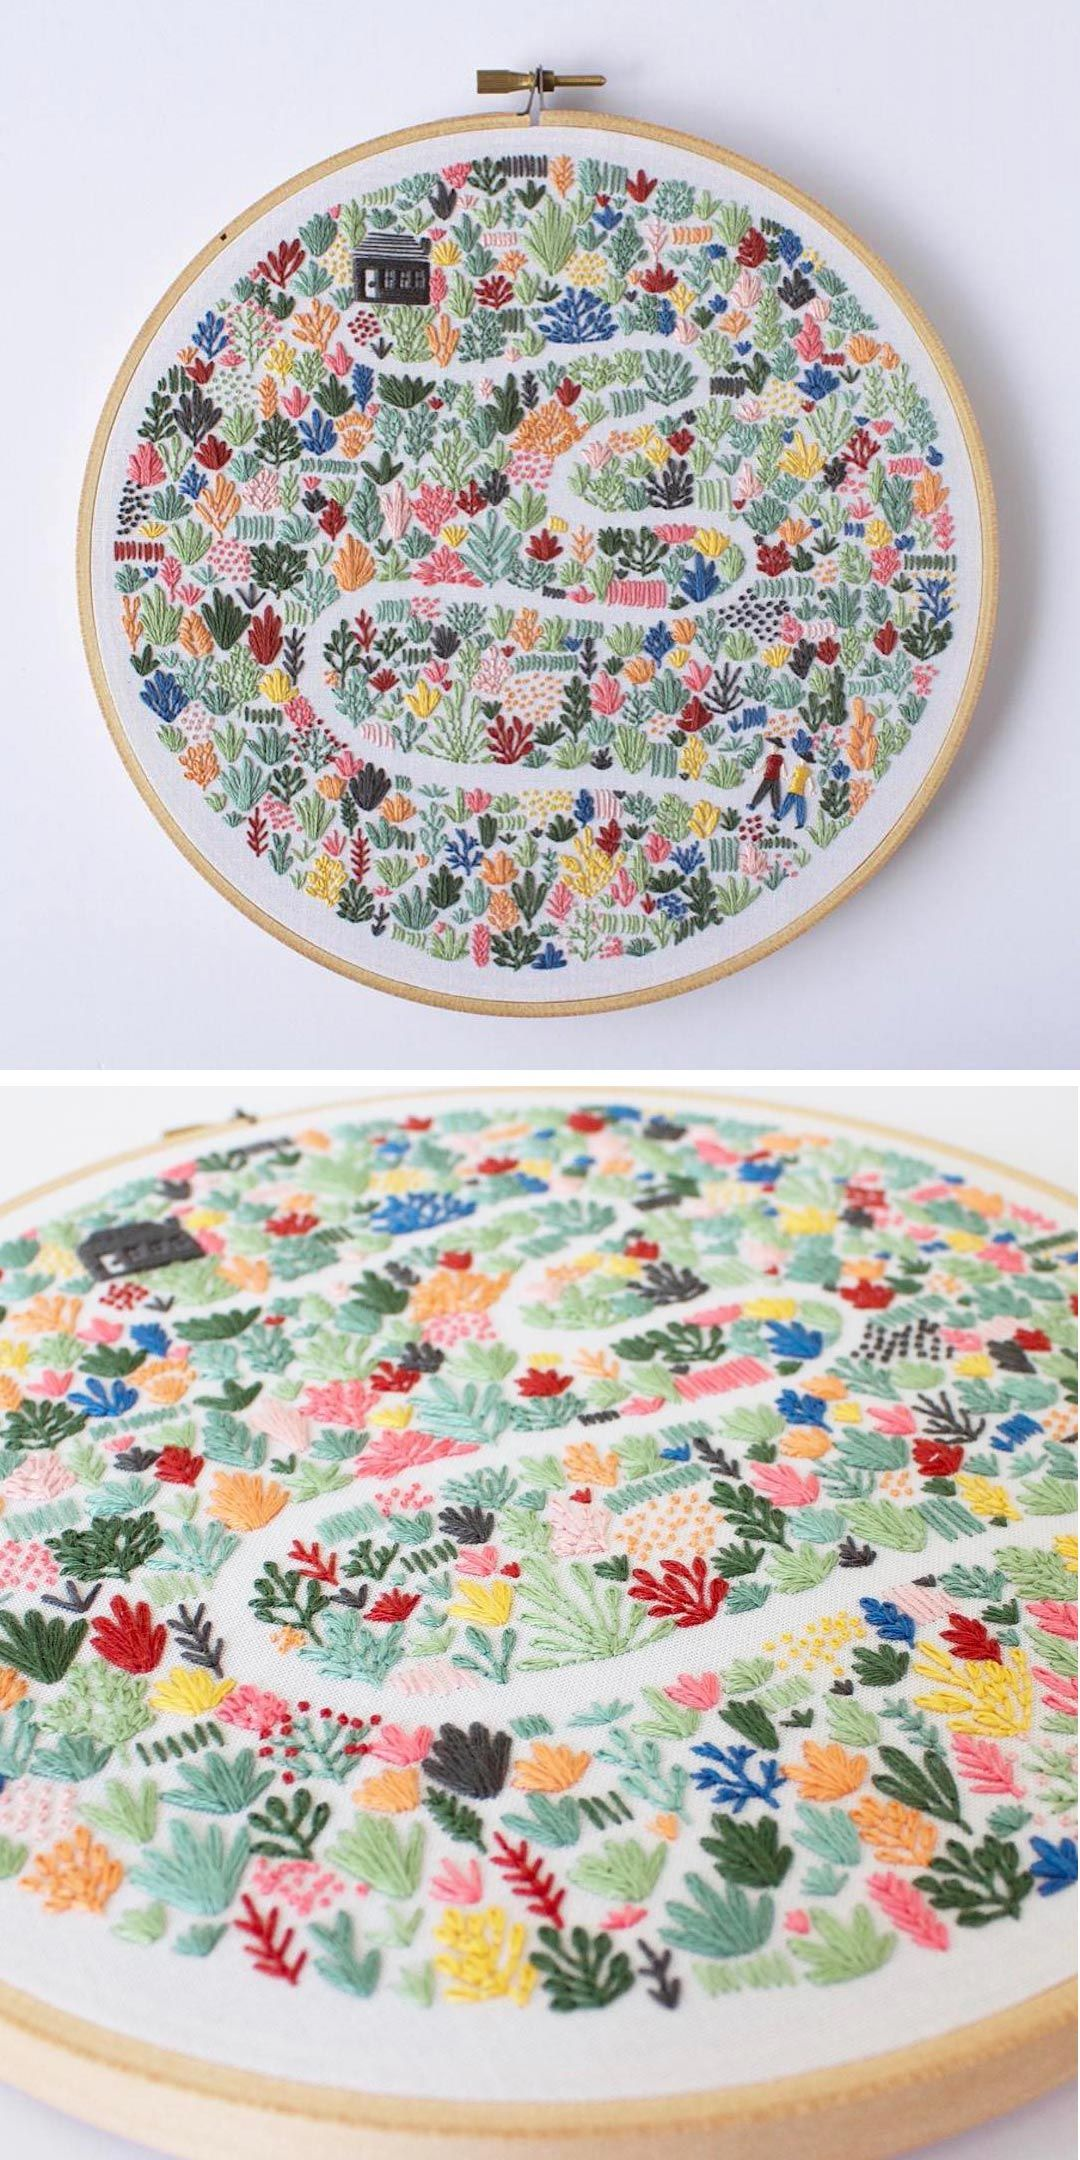 Ribbon embroidery bedspread designs - Modern Embroidery Patterns Highlight The Collaborative Nature Of The Craft